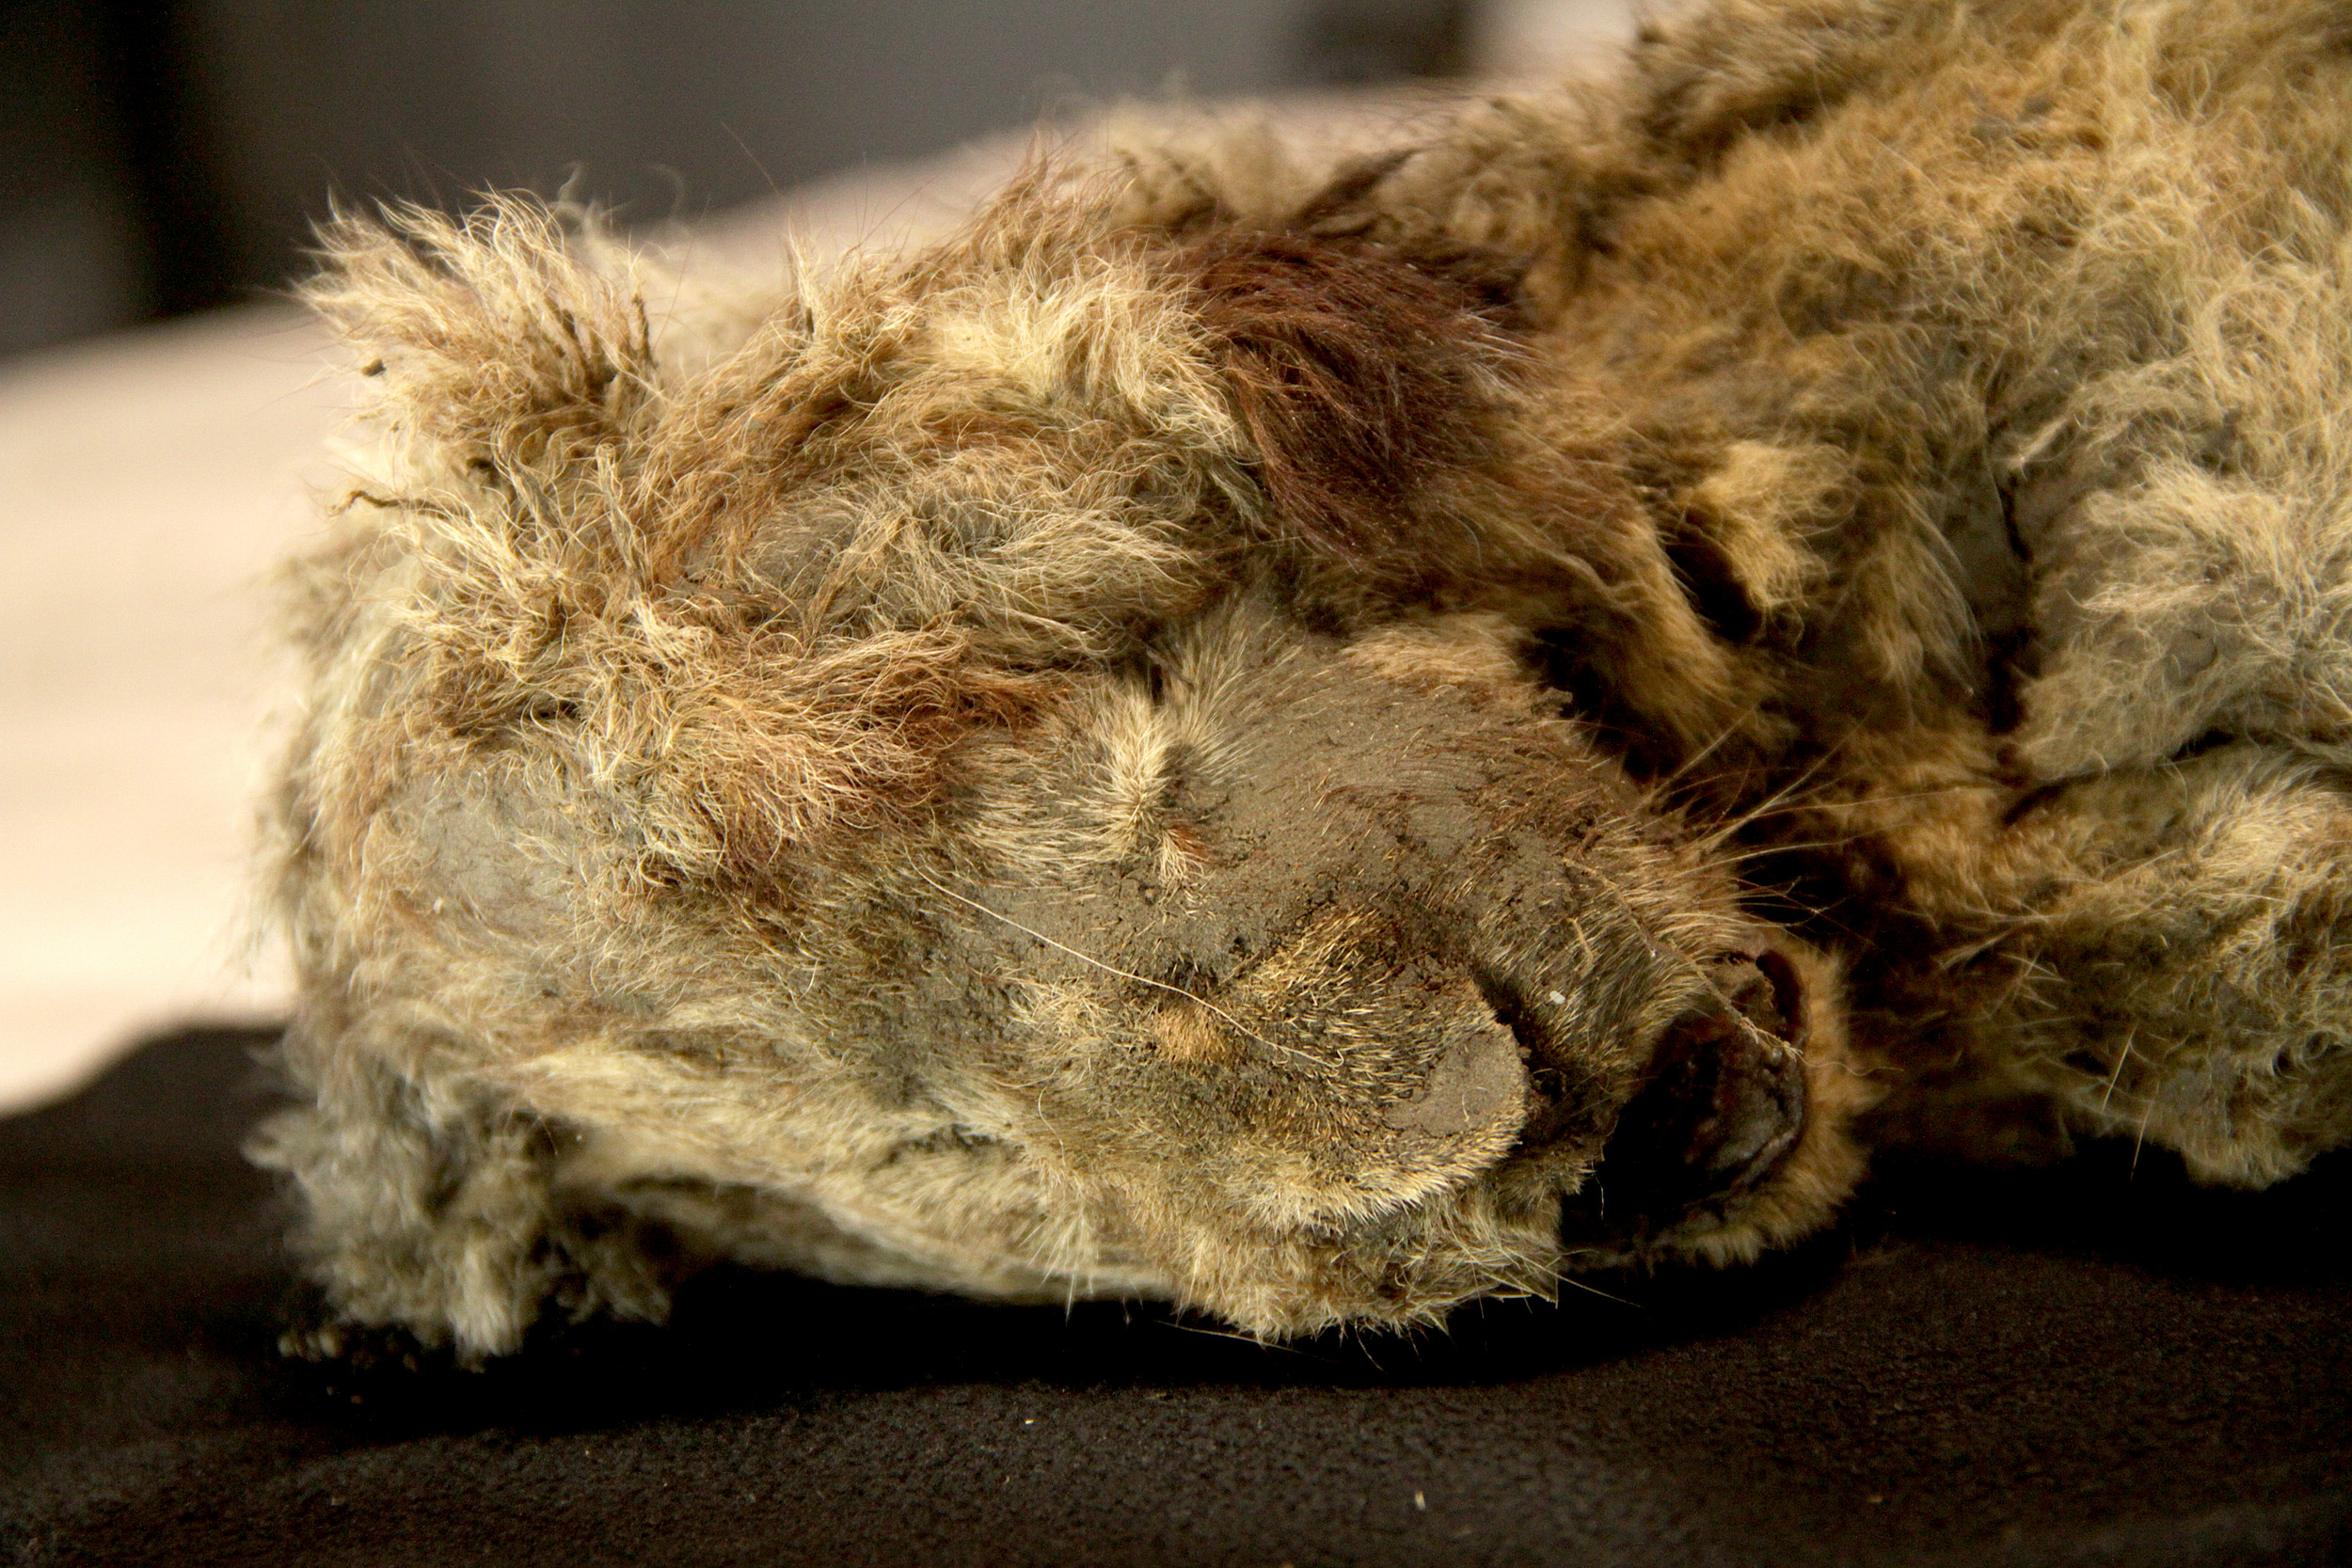 Scientists unveil extinct Ice Age lion cubs pulled from Russian permafrost